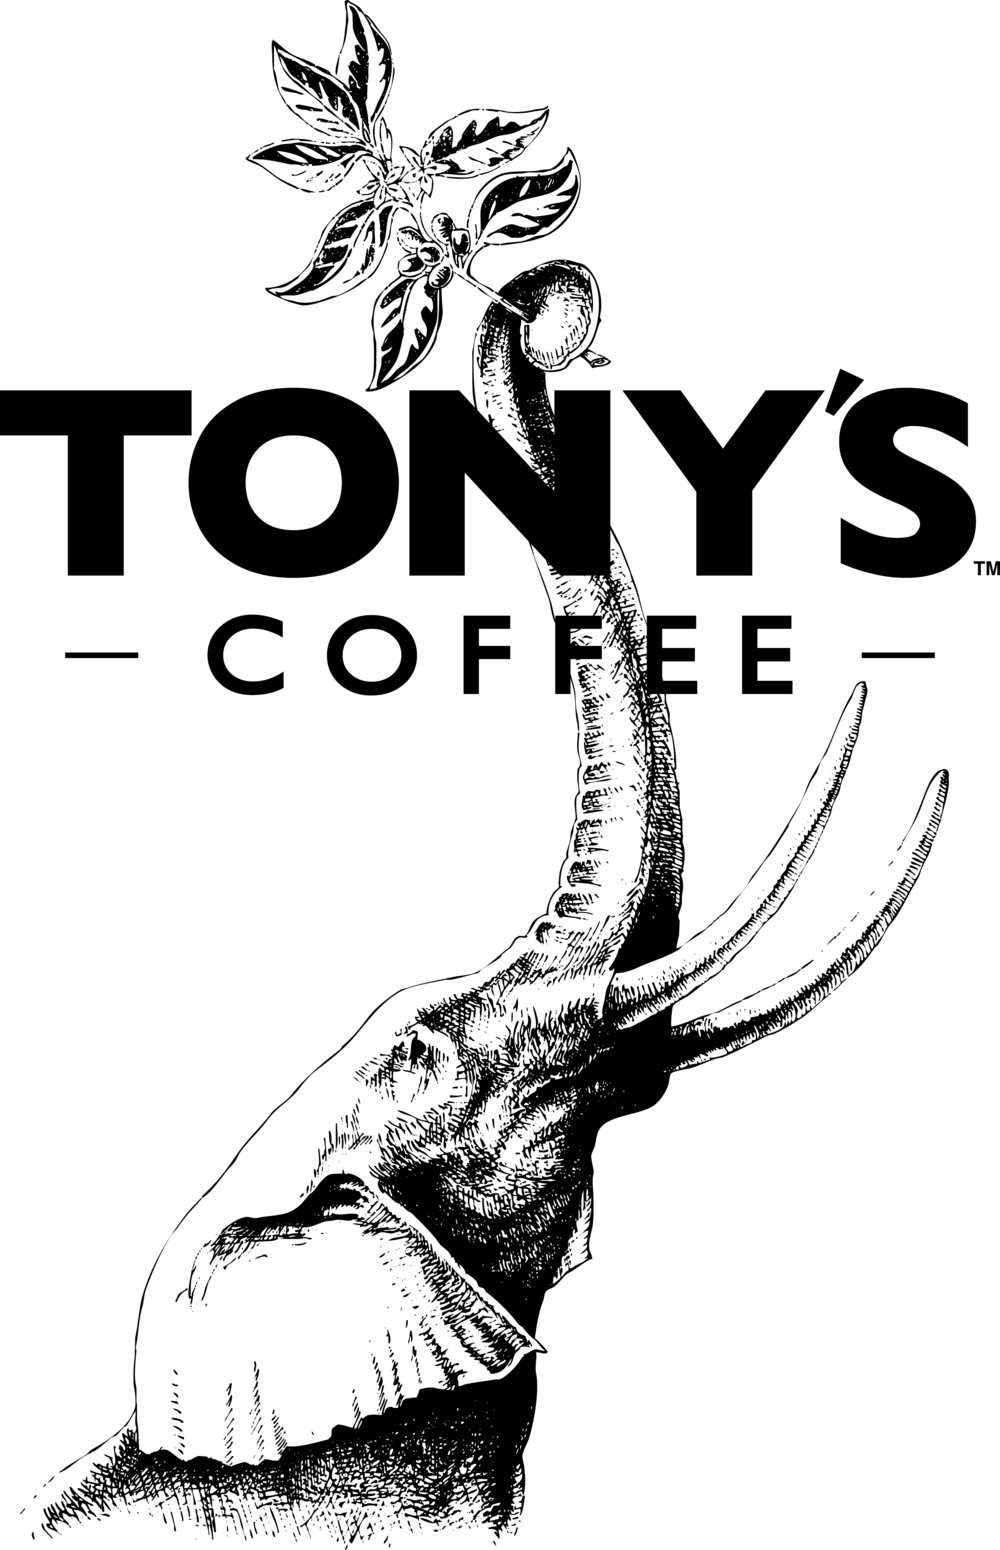 Coffee Donations provided by Tony's Coffee